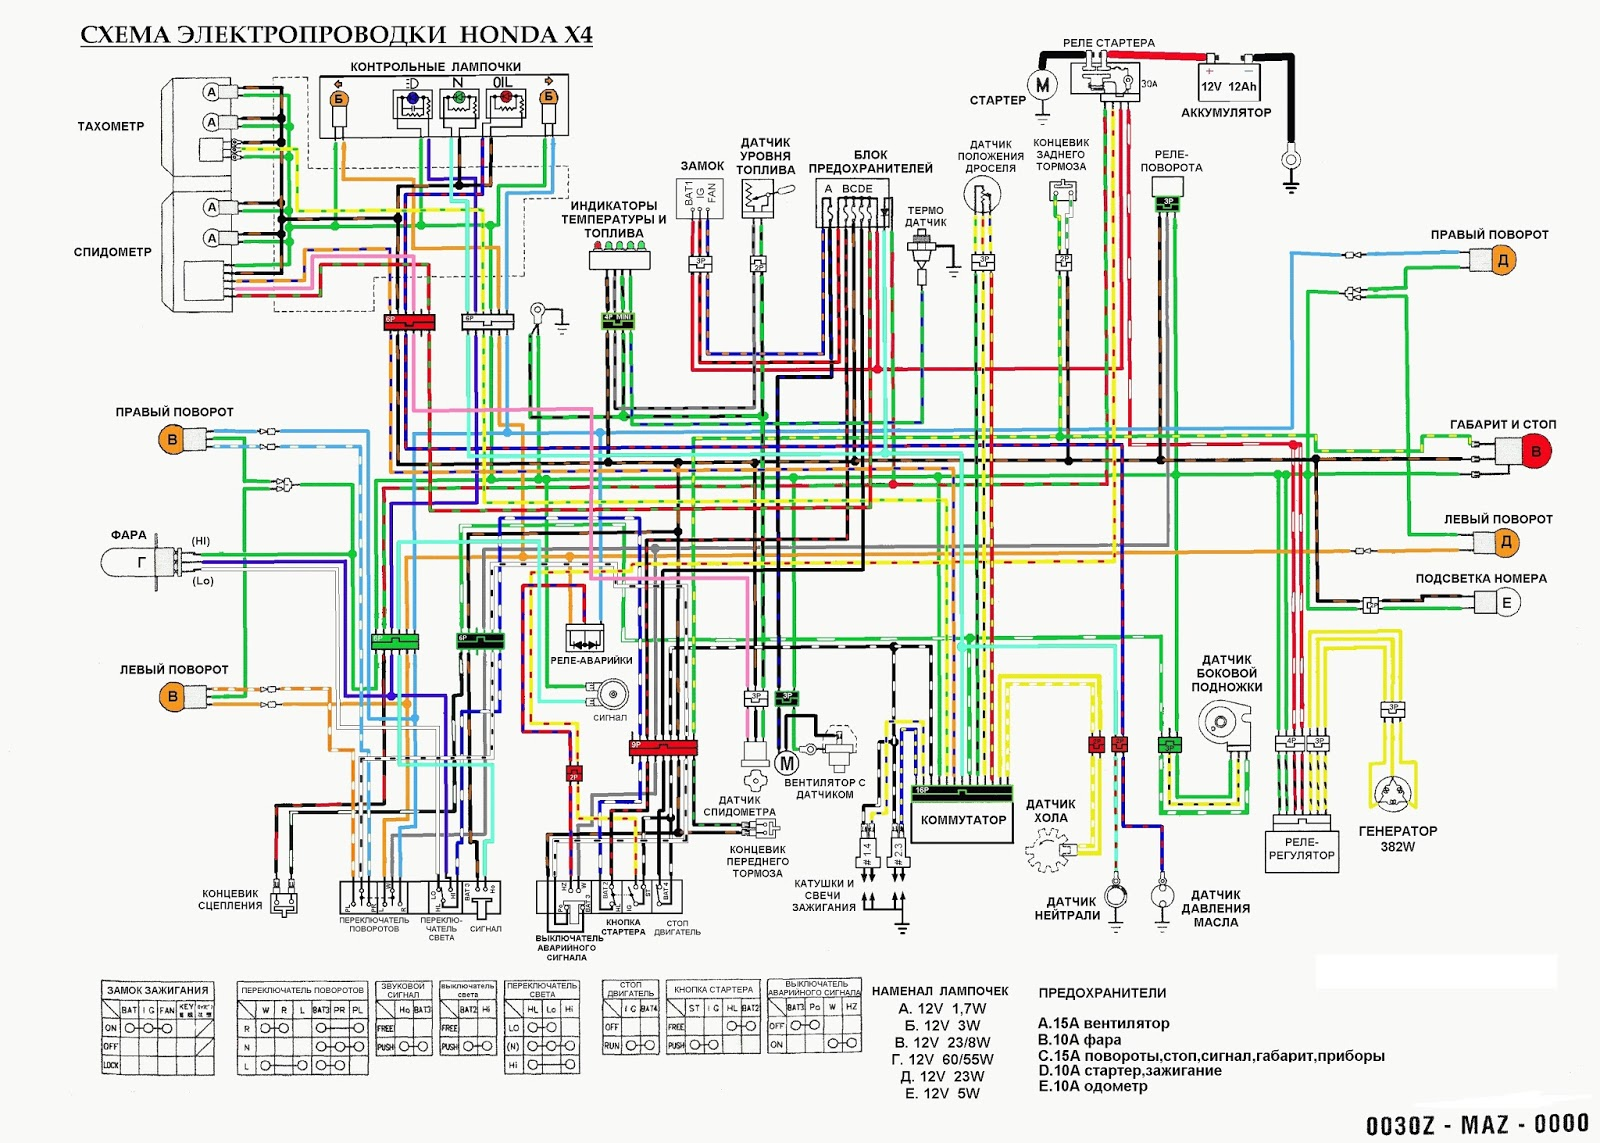 Wiring diagram honda mega pro wiring library ahotel kumpulan gambar wiring diagram sepeda motor terbaru codot modifikasi rh codotmodifikasi blogspot com 1997 honda radio ccuart Image collections